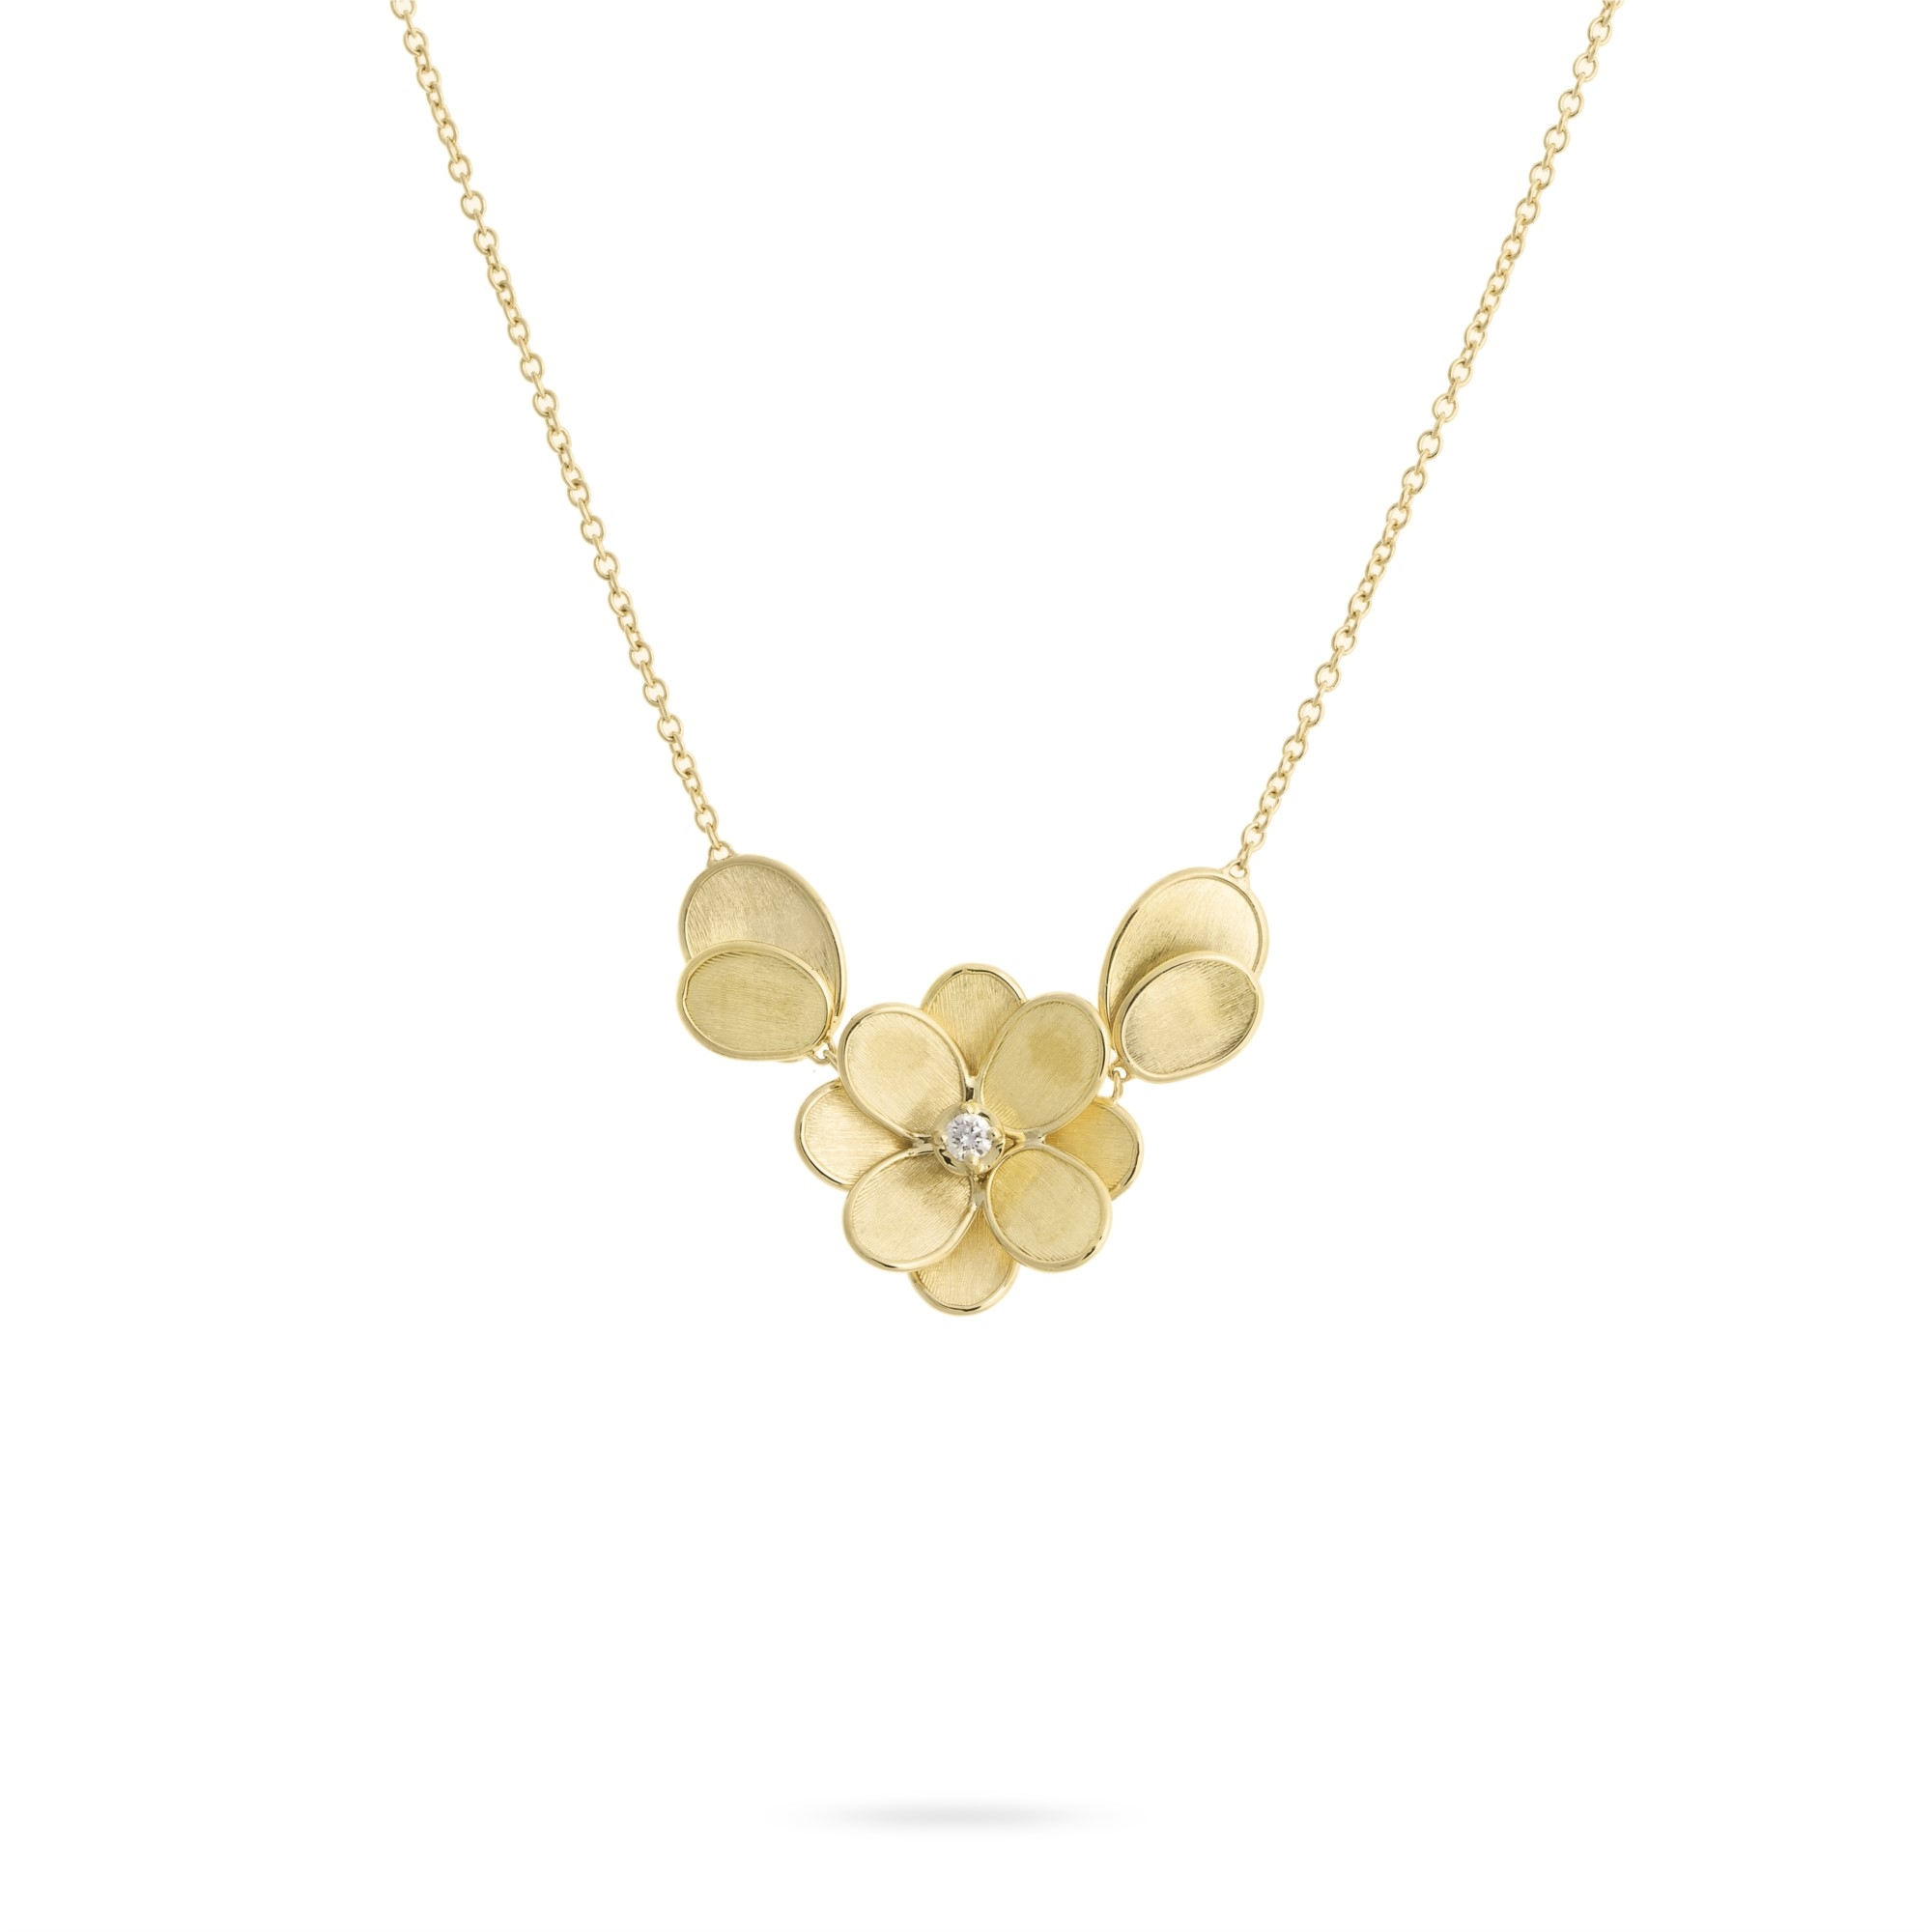 Marco Bicego 18K Yellow Gold .08cts  Diamonds Gold Necklace with Stones CB2437 B Y